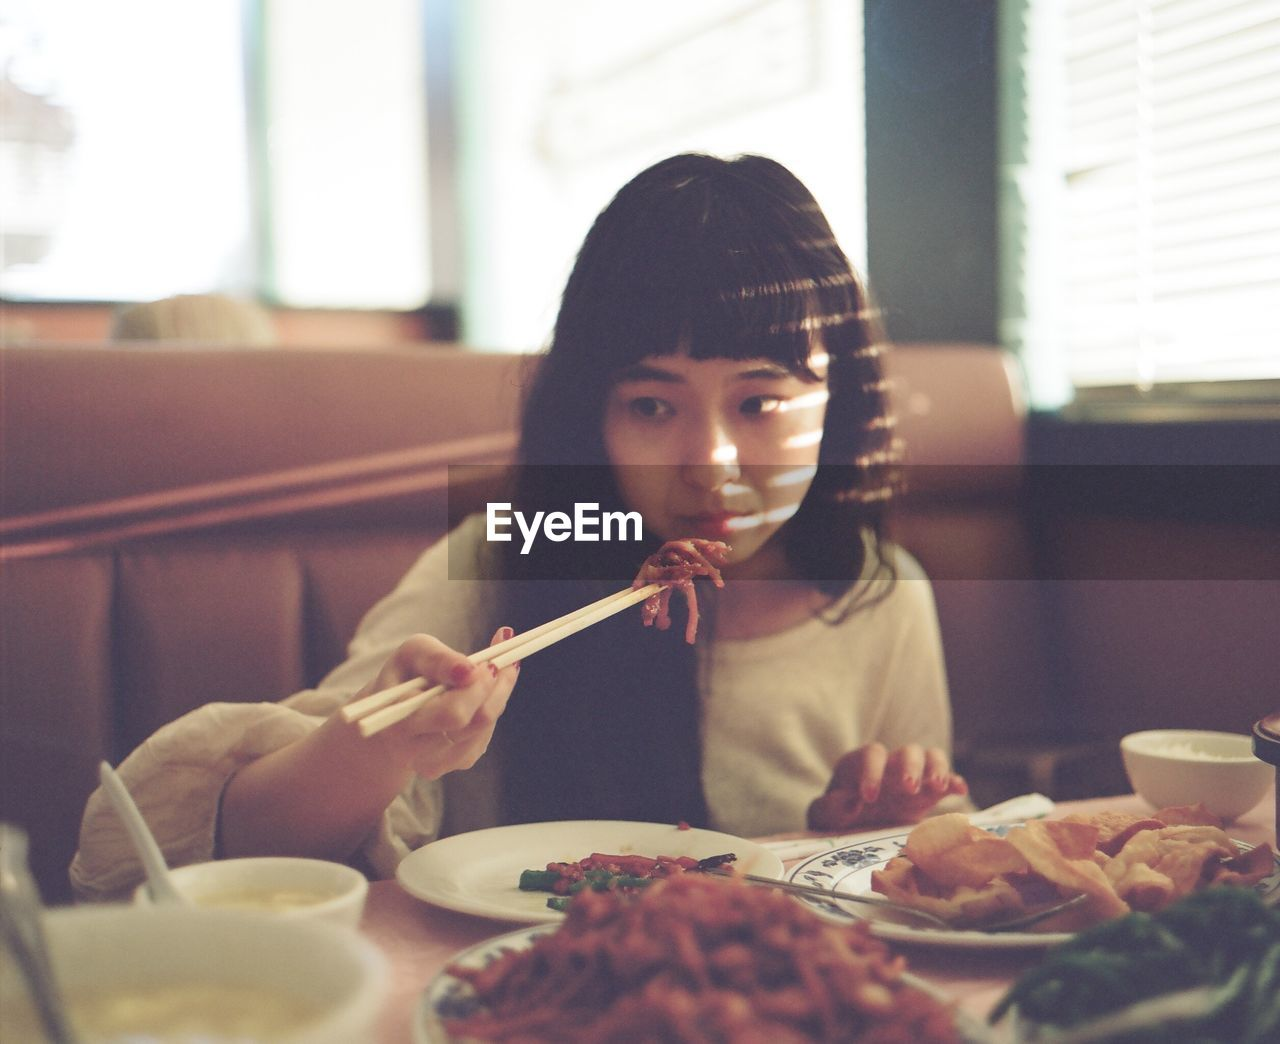 food and drink, table, indoors, real people, food, one person, front view, lifestyles, elementary age, eating, sitting, home interior, childhood, chopsticks, looking at camera, holding, plate, headshot, girls, healthy eating, freshness, portrait, close-up, human hand, ready-to-eat, day, young adult, people